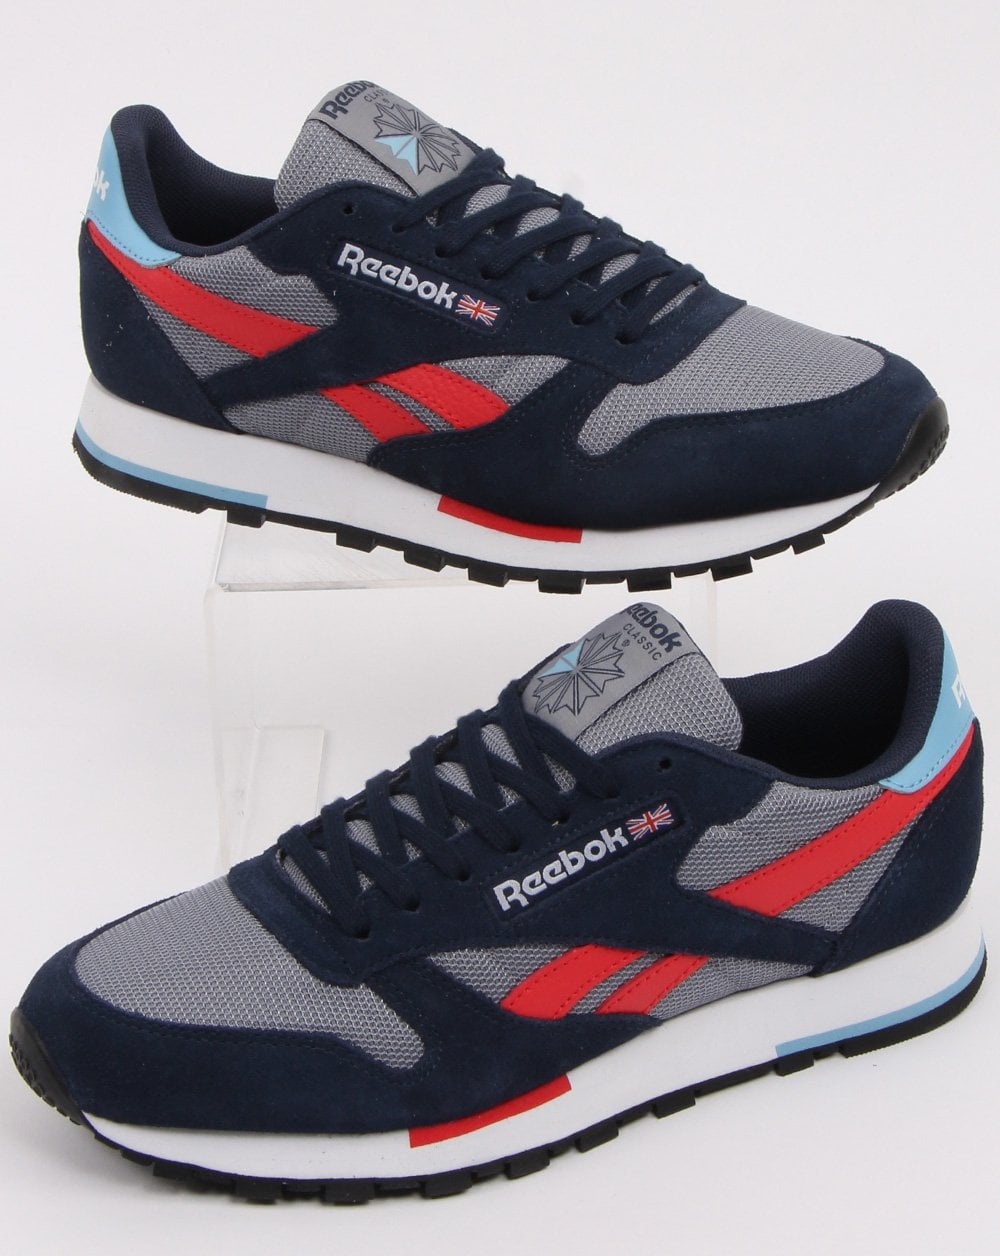 photos officielles 839b7 c612e Reebok Classic Leather Trainers Grey/navy